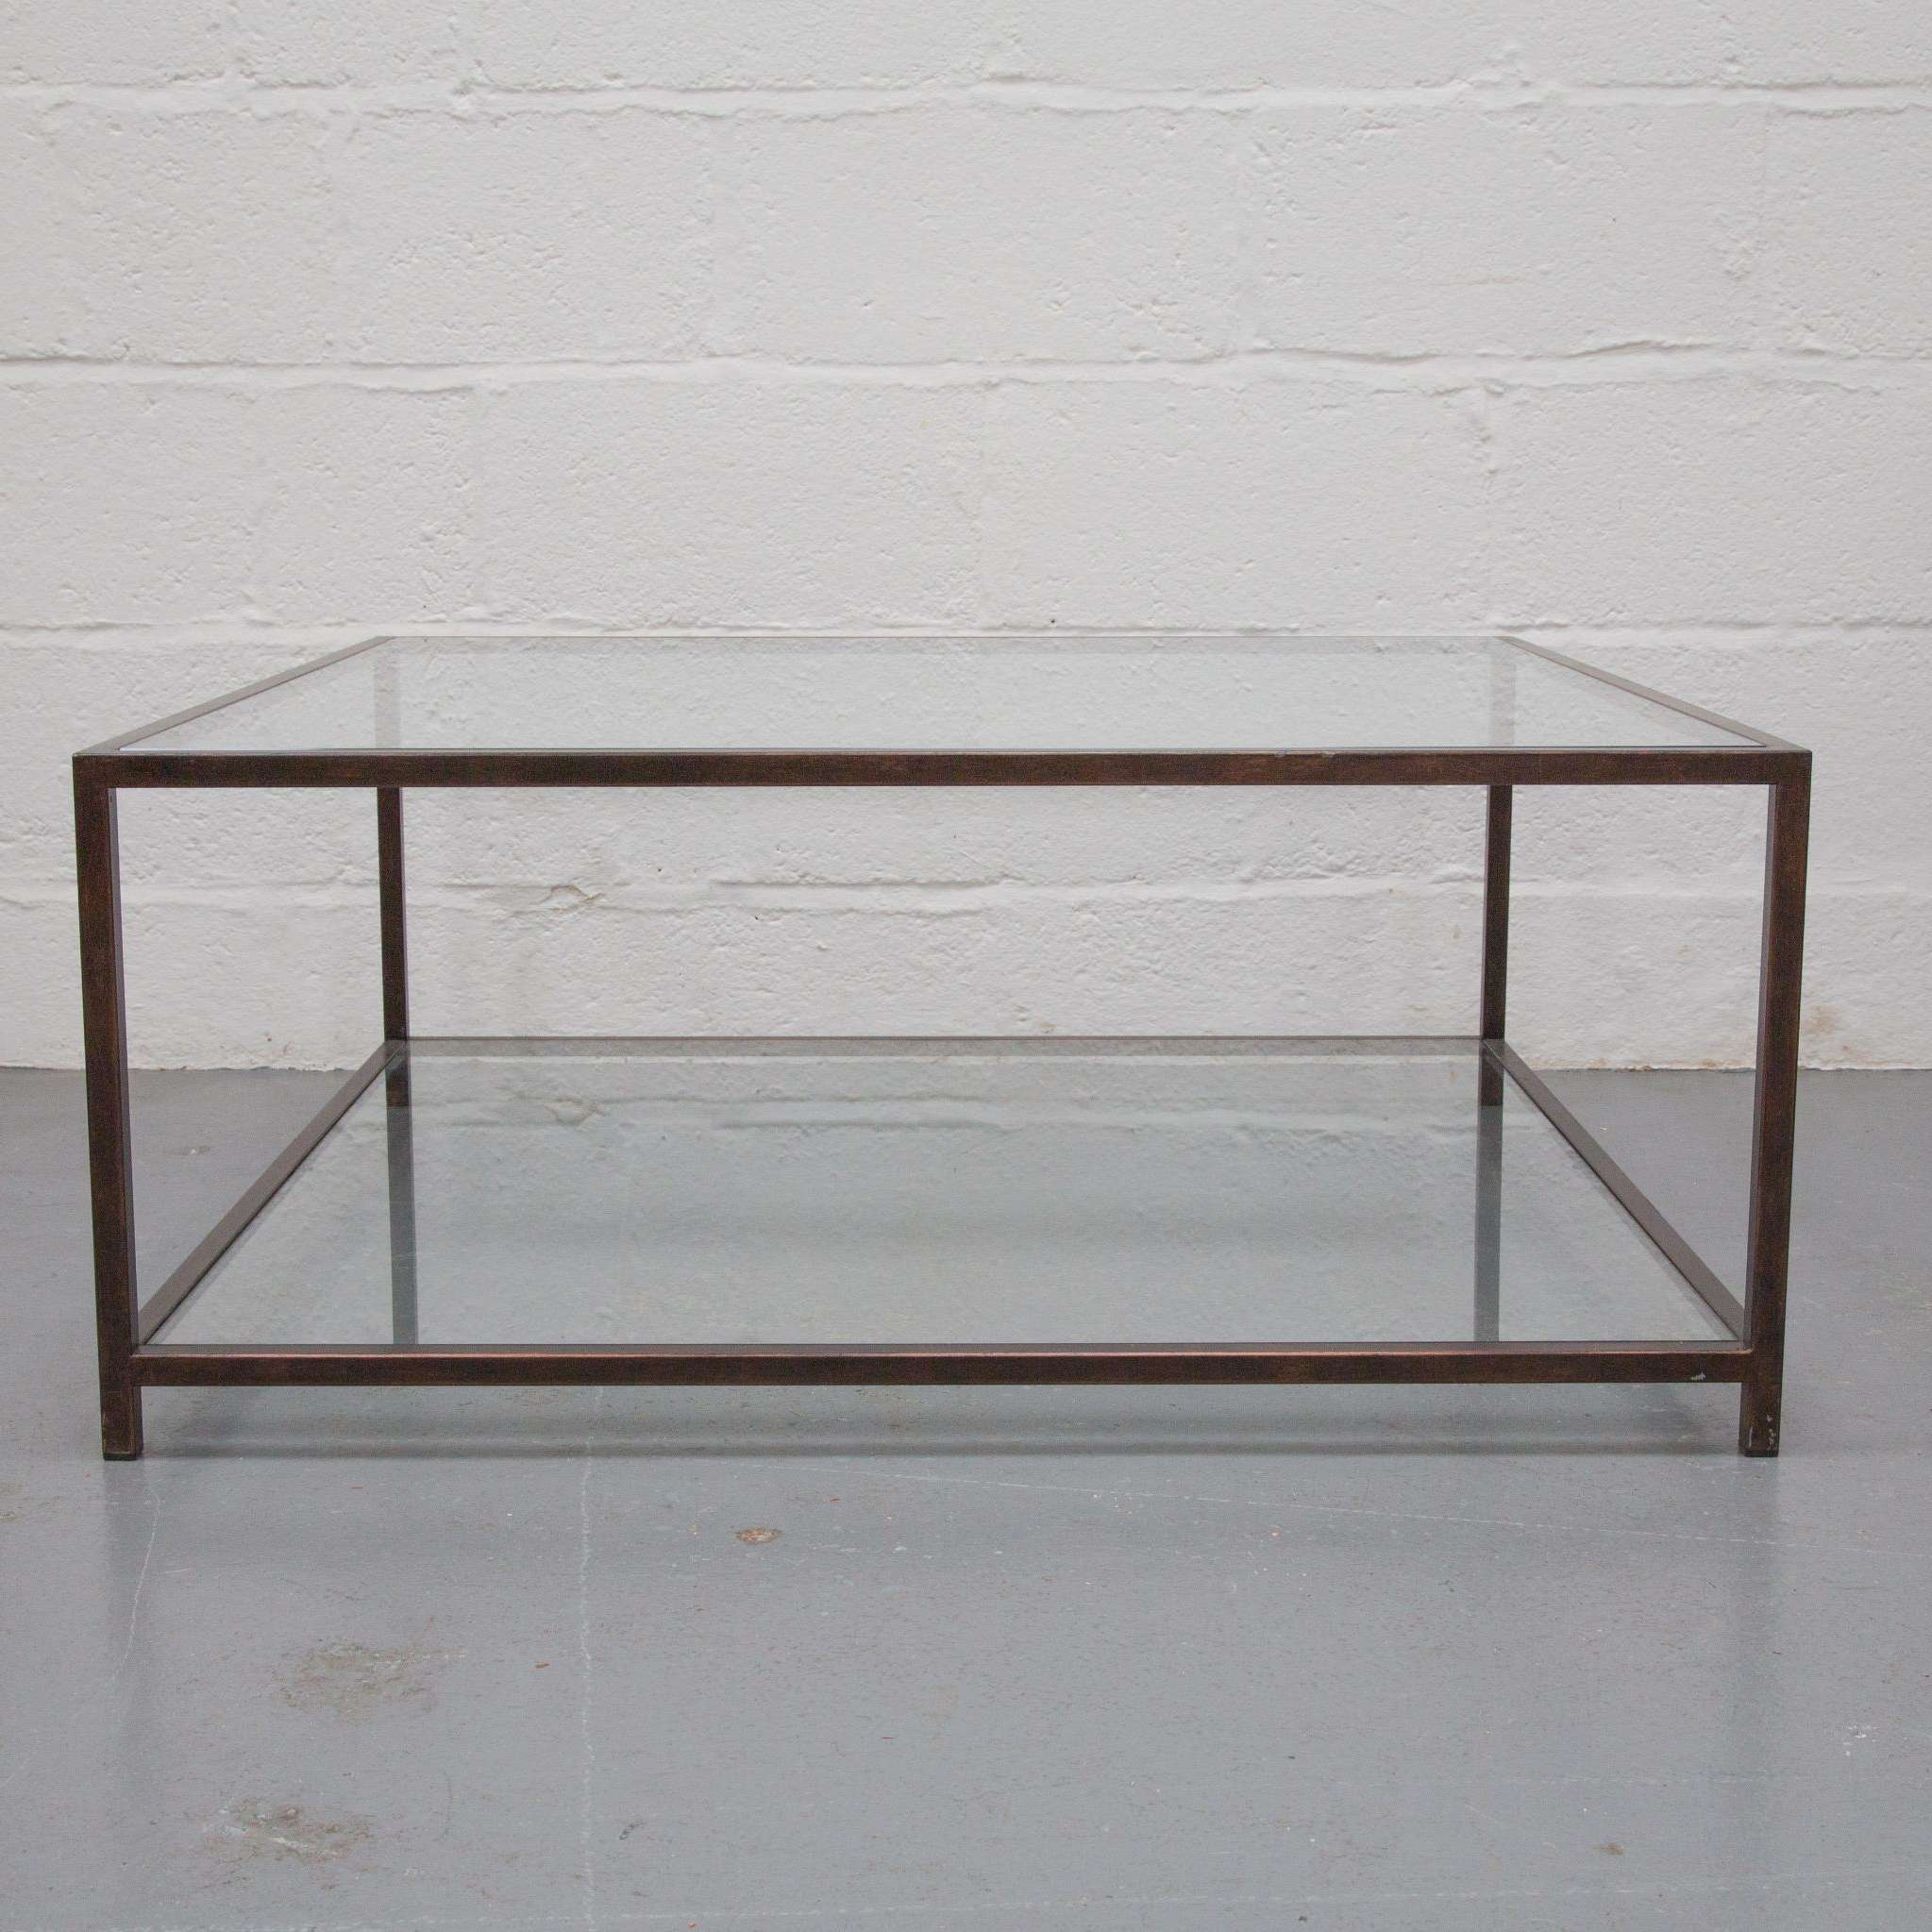 A Bespoke Tom Faulkner Madison Coffee Table – Alchemy Intended For Newest Bespoke Coffee Tables (View 1 of 20)